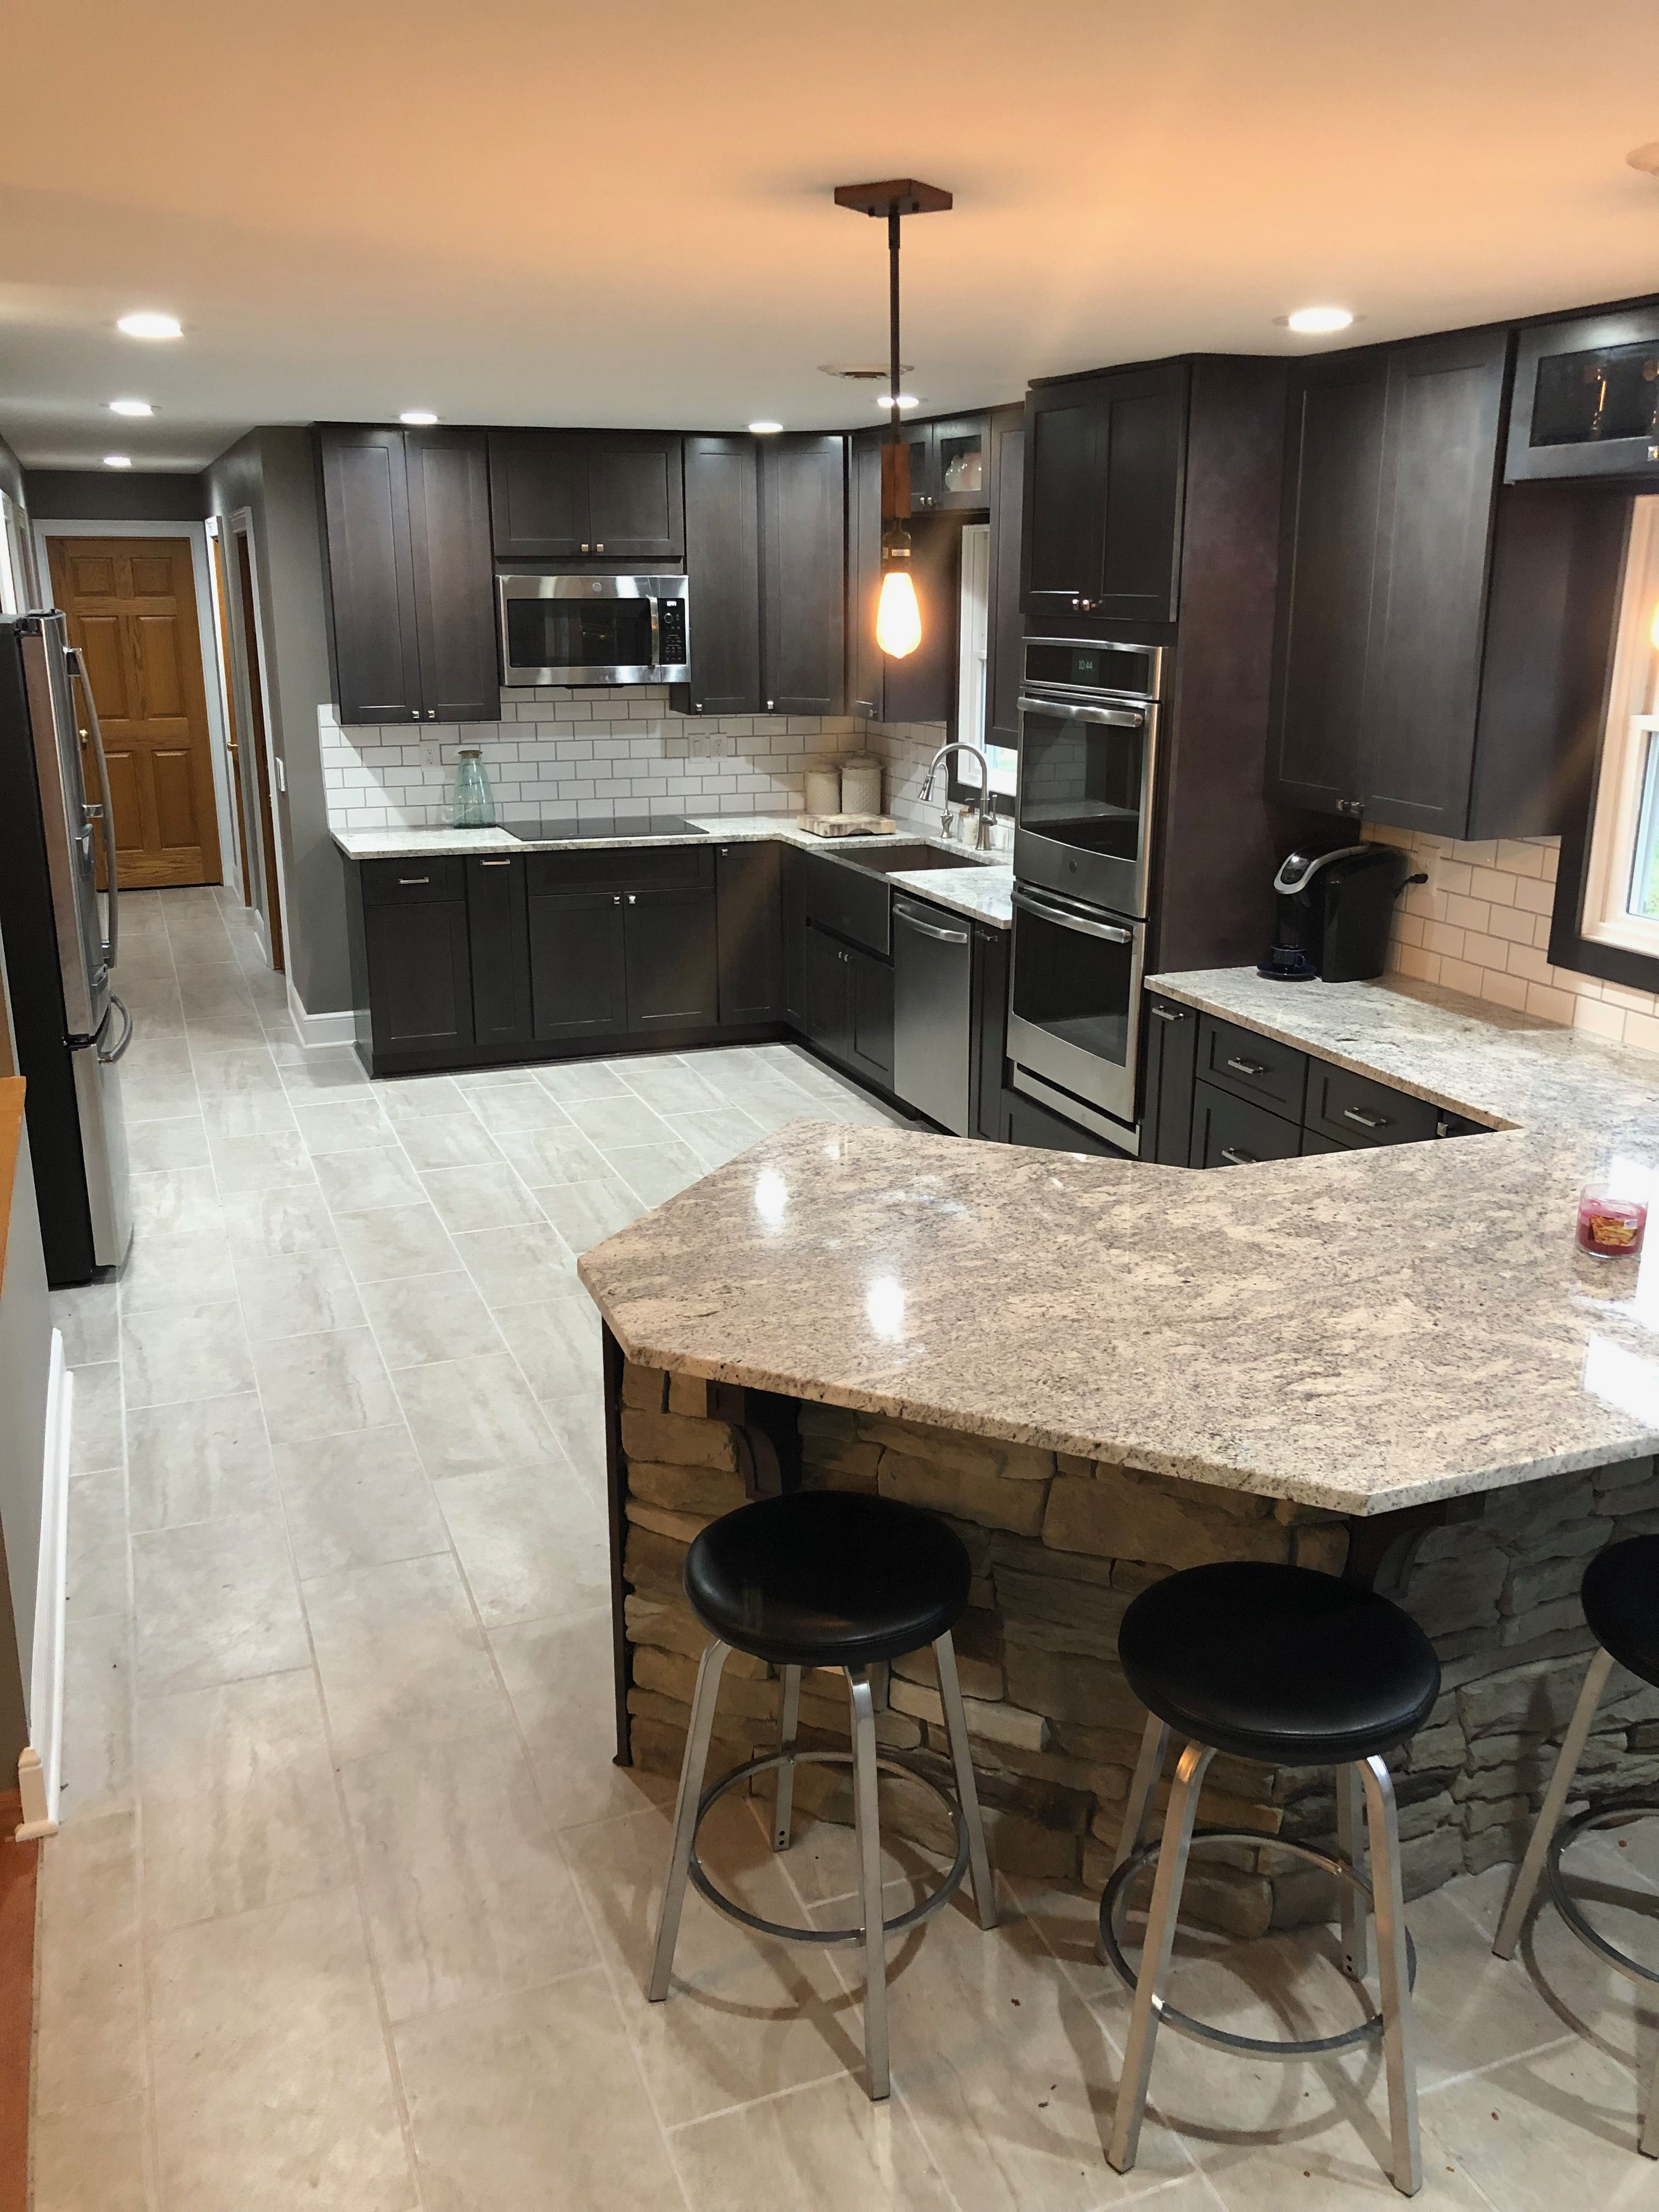 Former 10x12 Galley Style Kitchen With Honey Oak Paneling And Cabinets Was Expanded By Taking Small Kitchen Design Layout Kitchen Design Images Kitchen Design